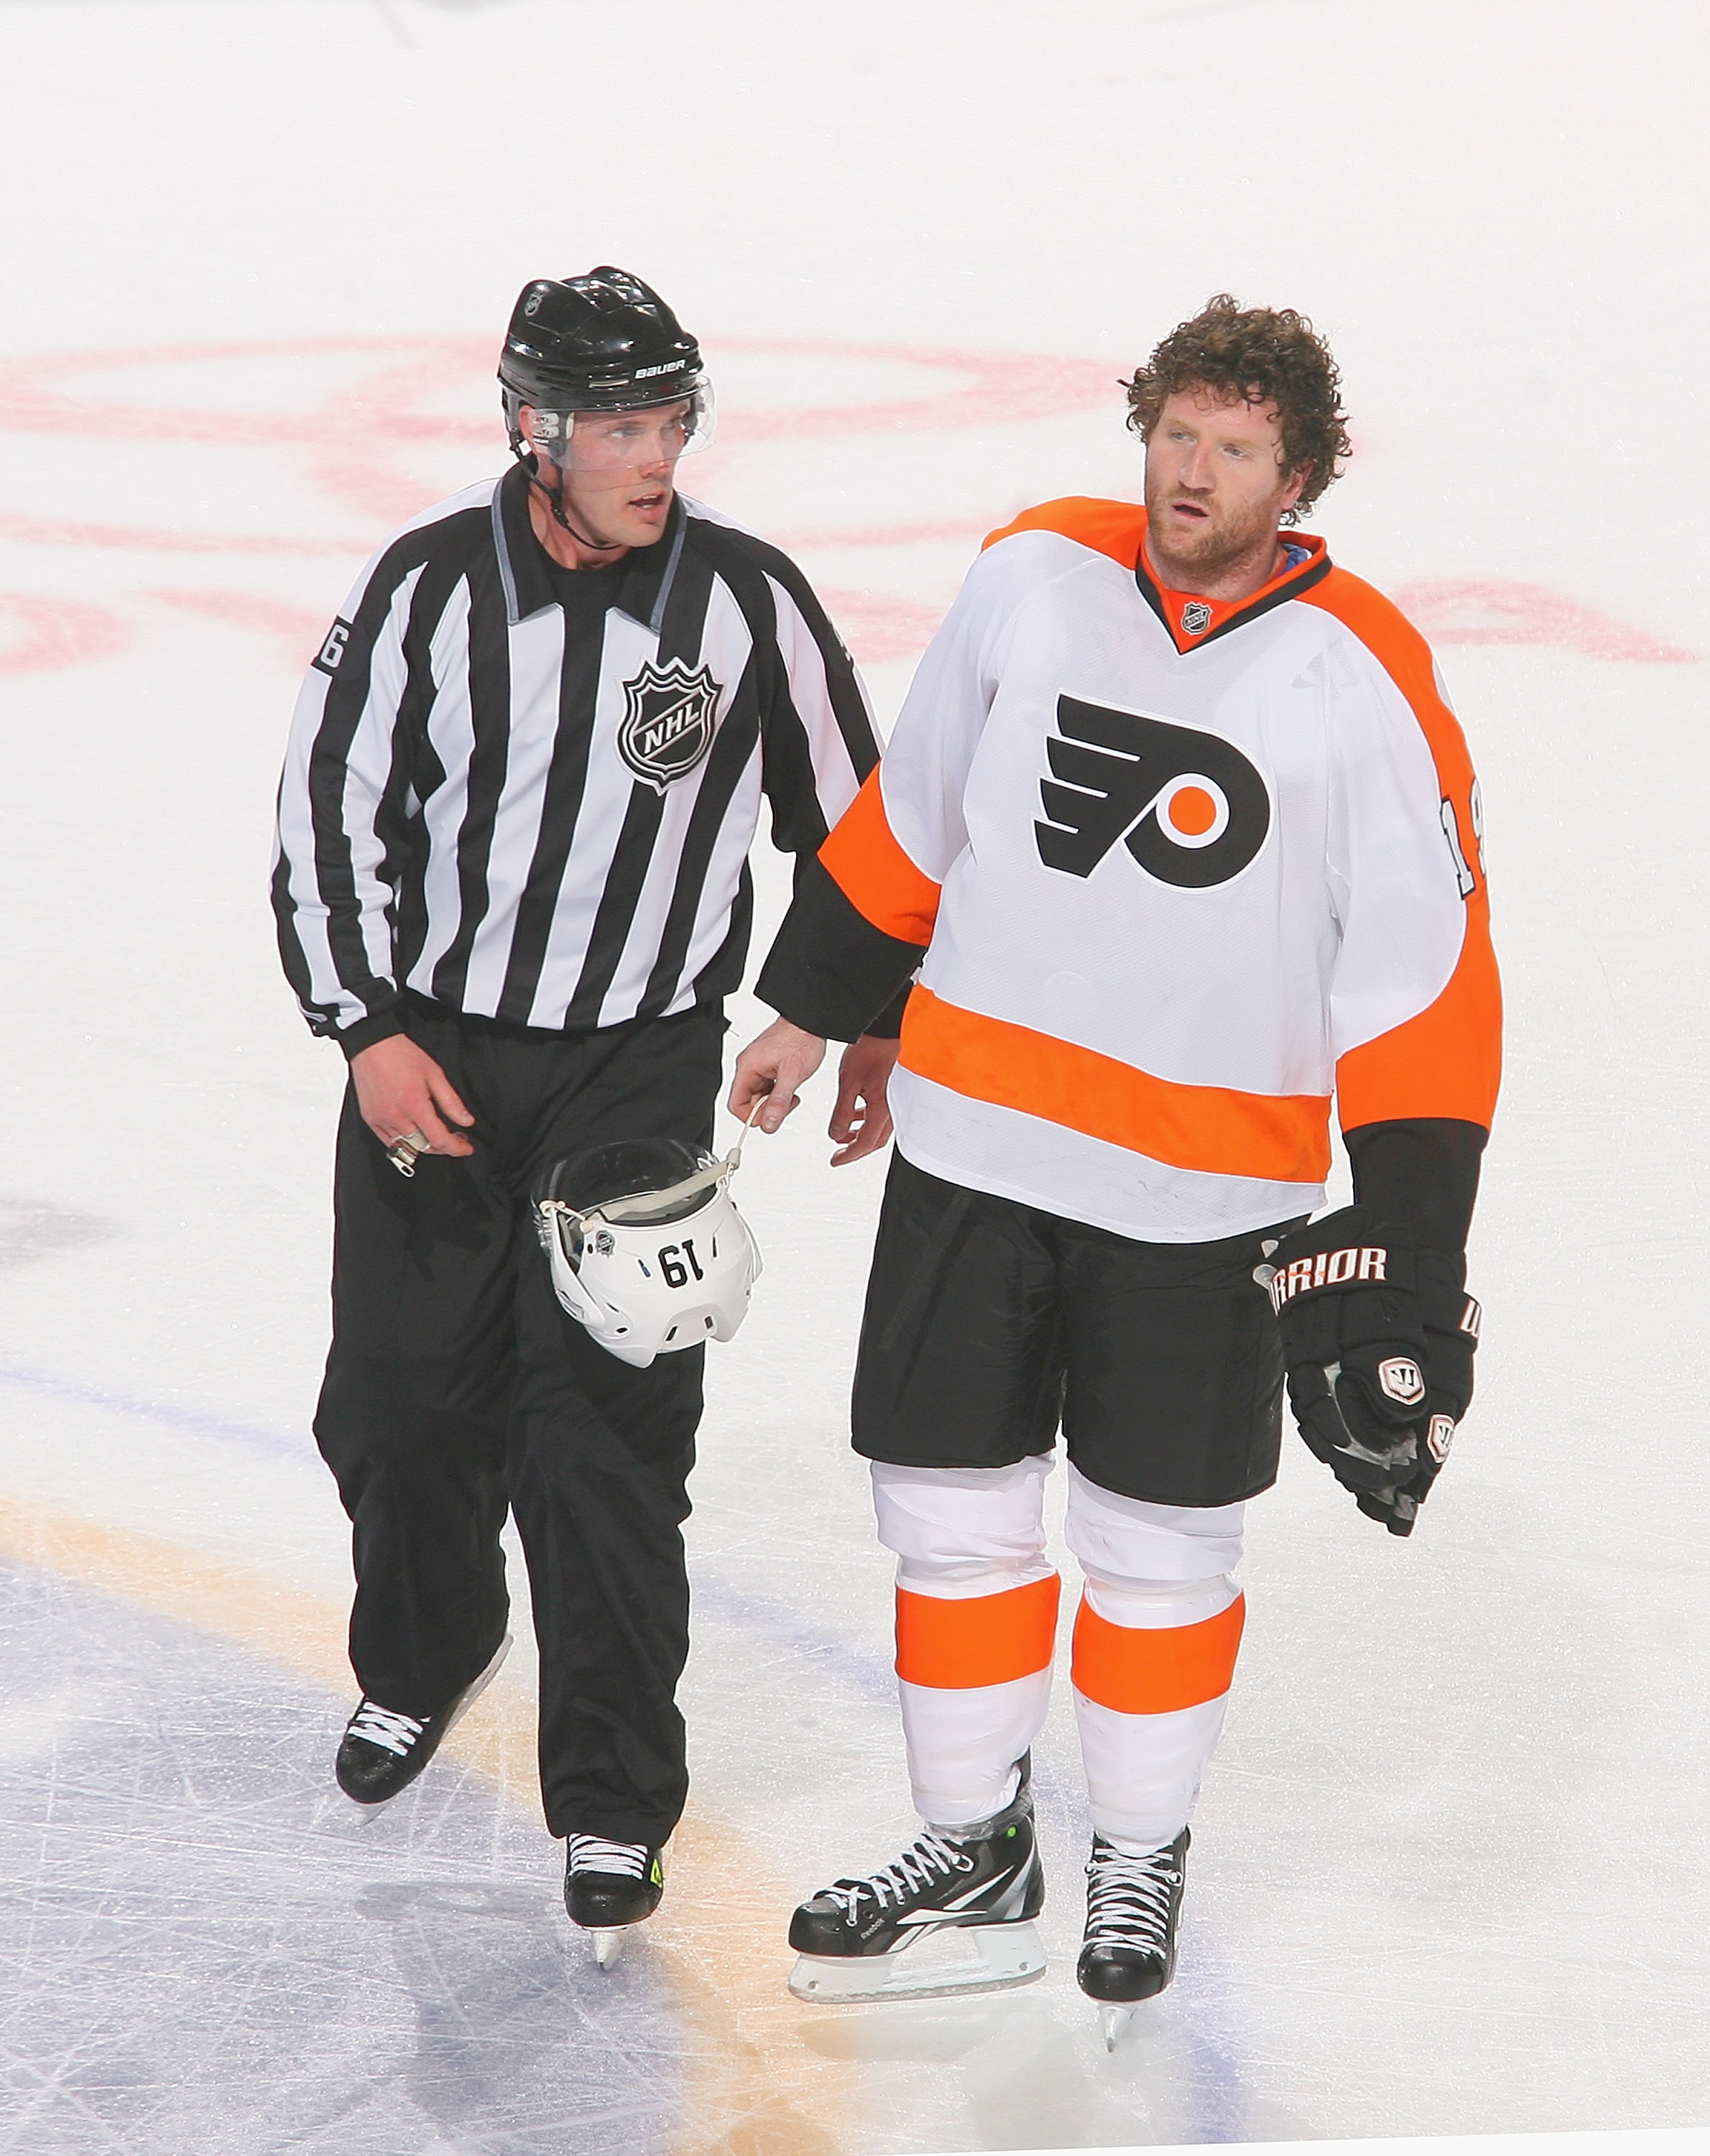 Scott Hartnell has spent over 1500 minutes in the penalty box in his career. That's over 25 full NHL games.